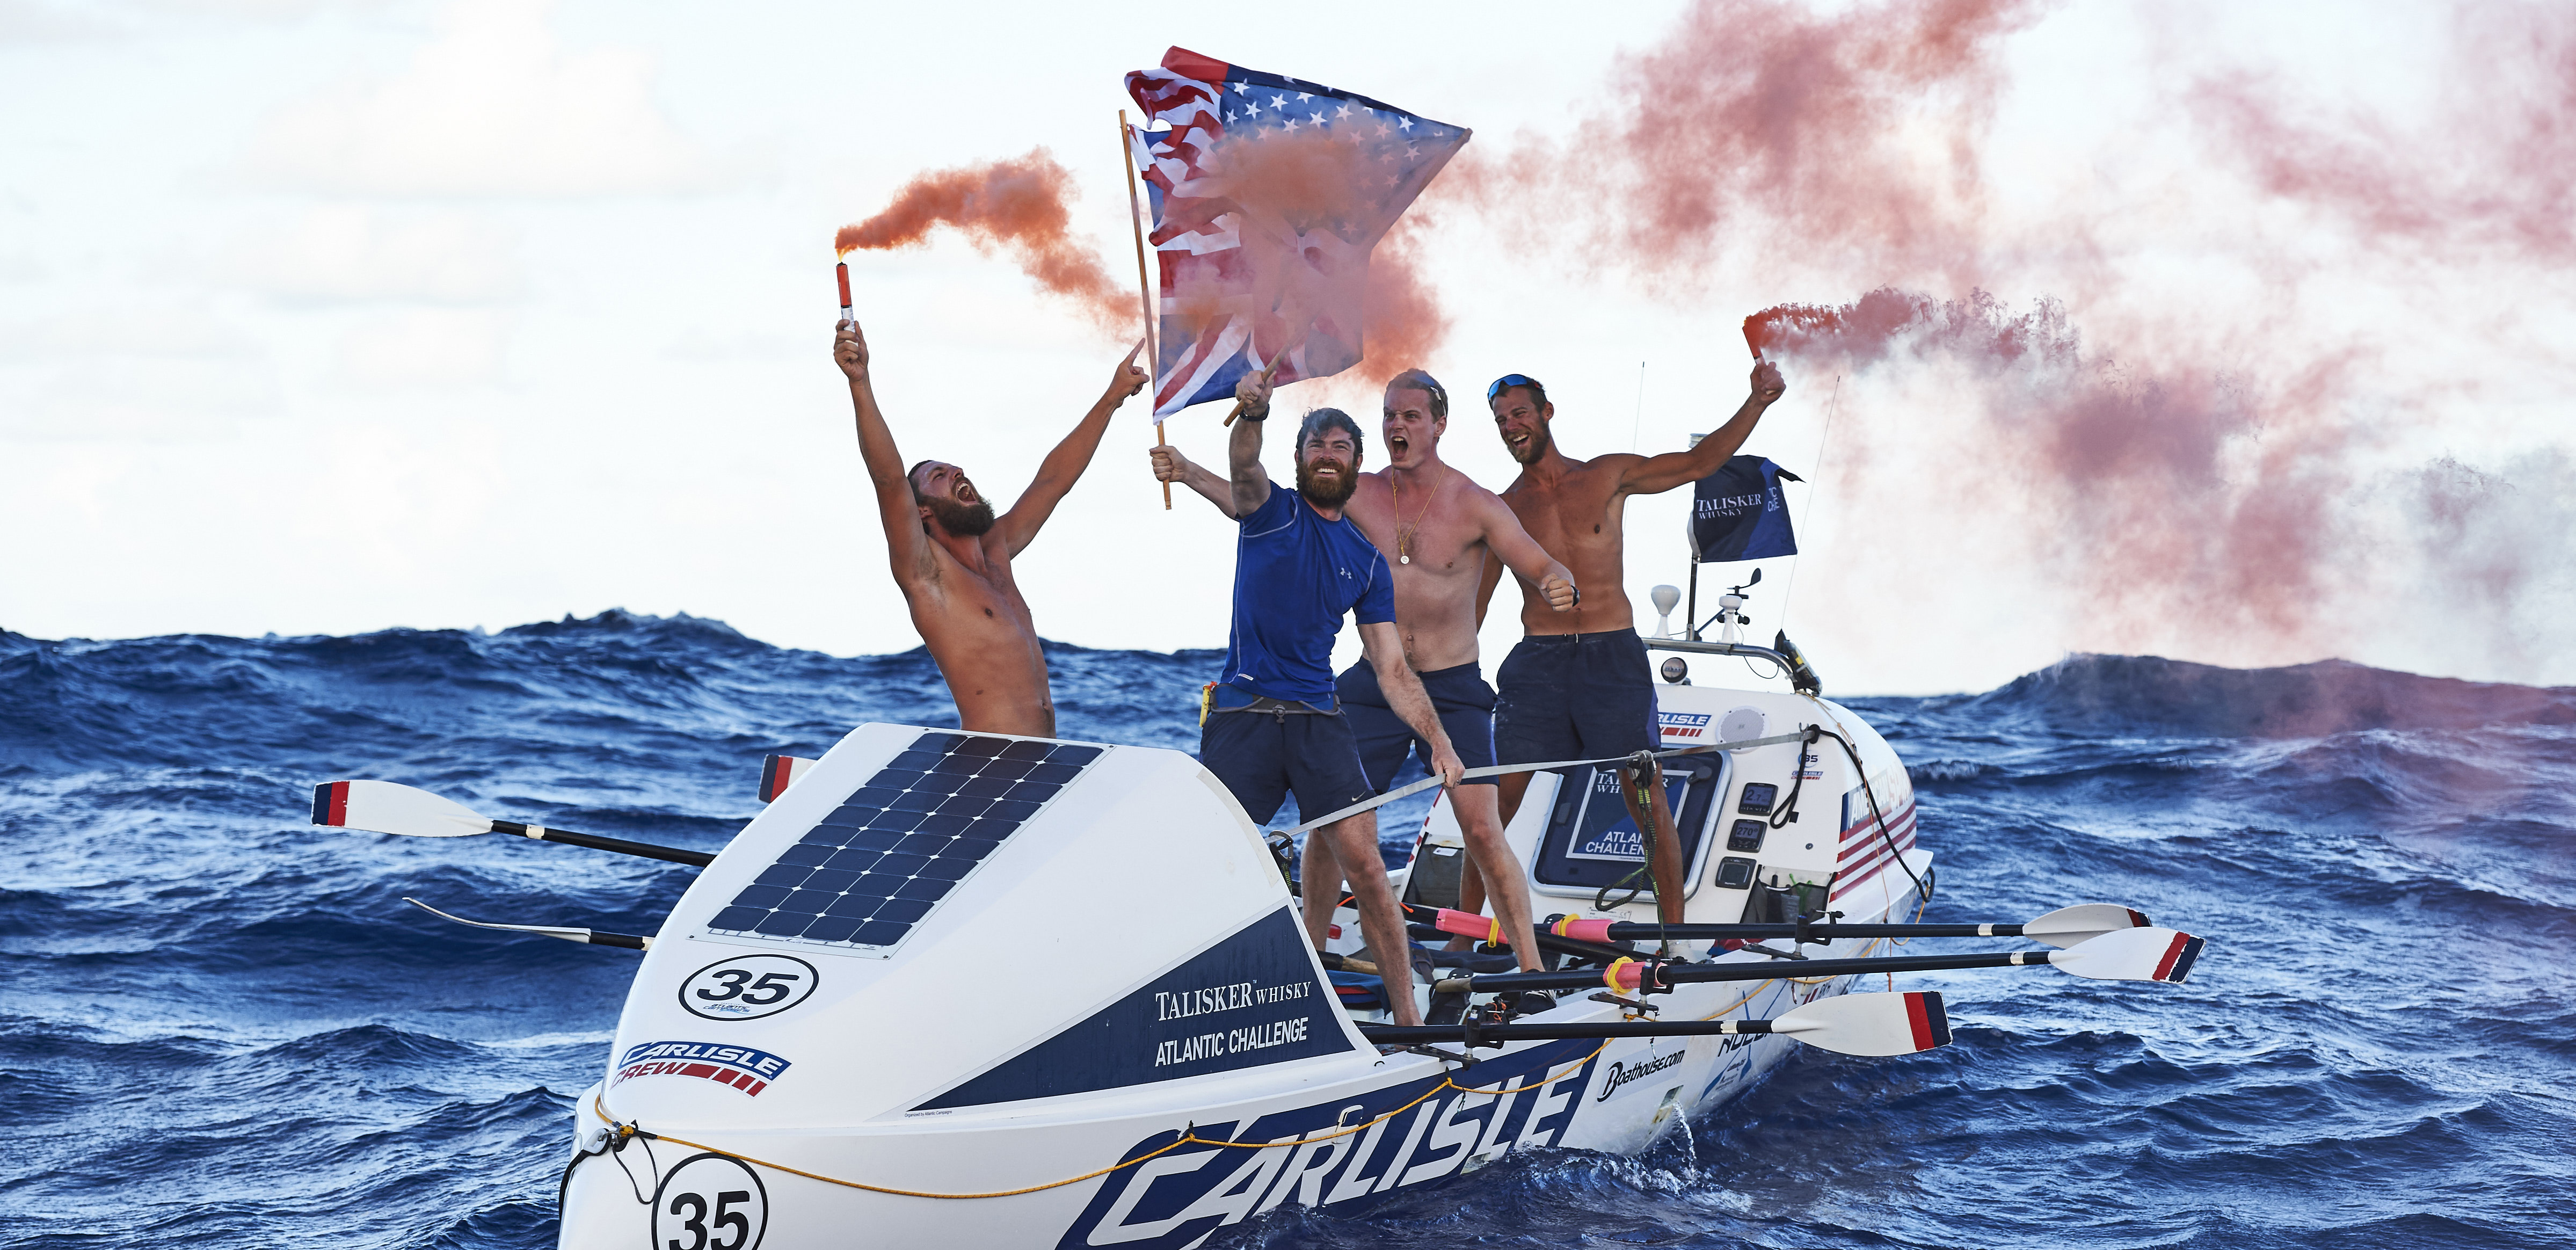 Carlisle's American Spirit crosses the finish line in the Talisker Atlantic Challenge shattering all previous records. Photographer: Ben Duffy